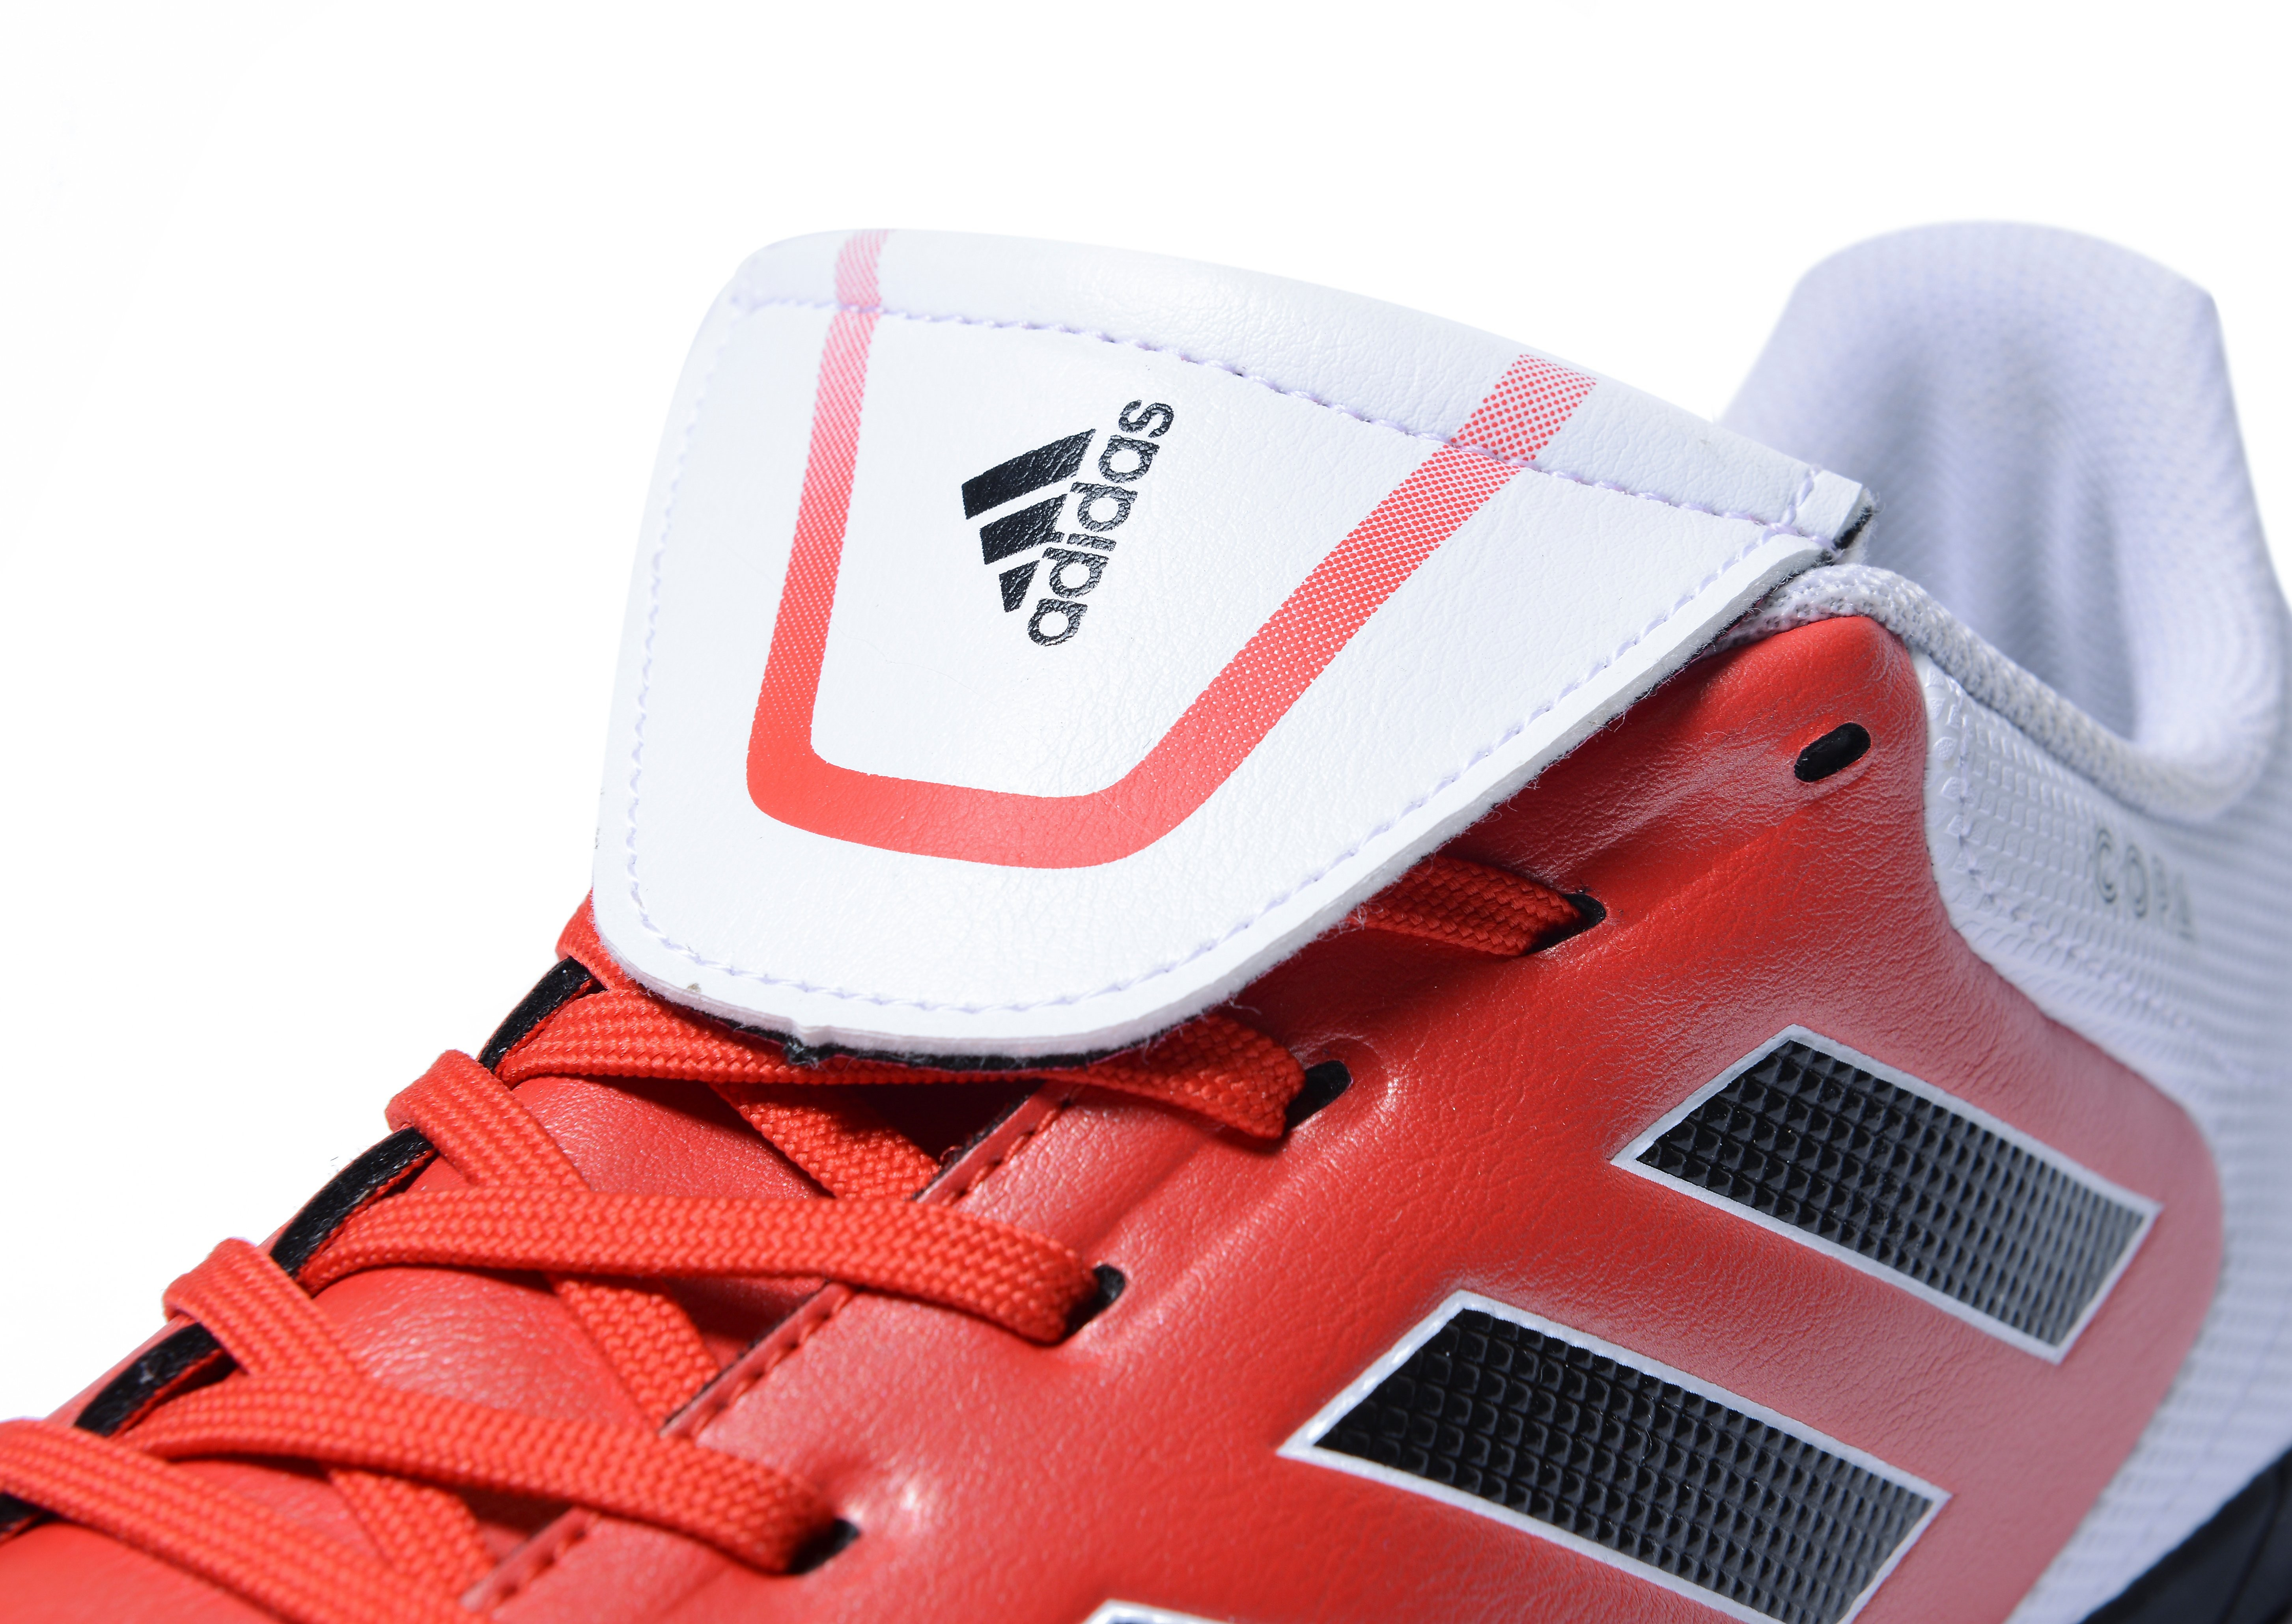 adidas Red Limit Copa 17.4 Turf